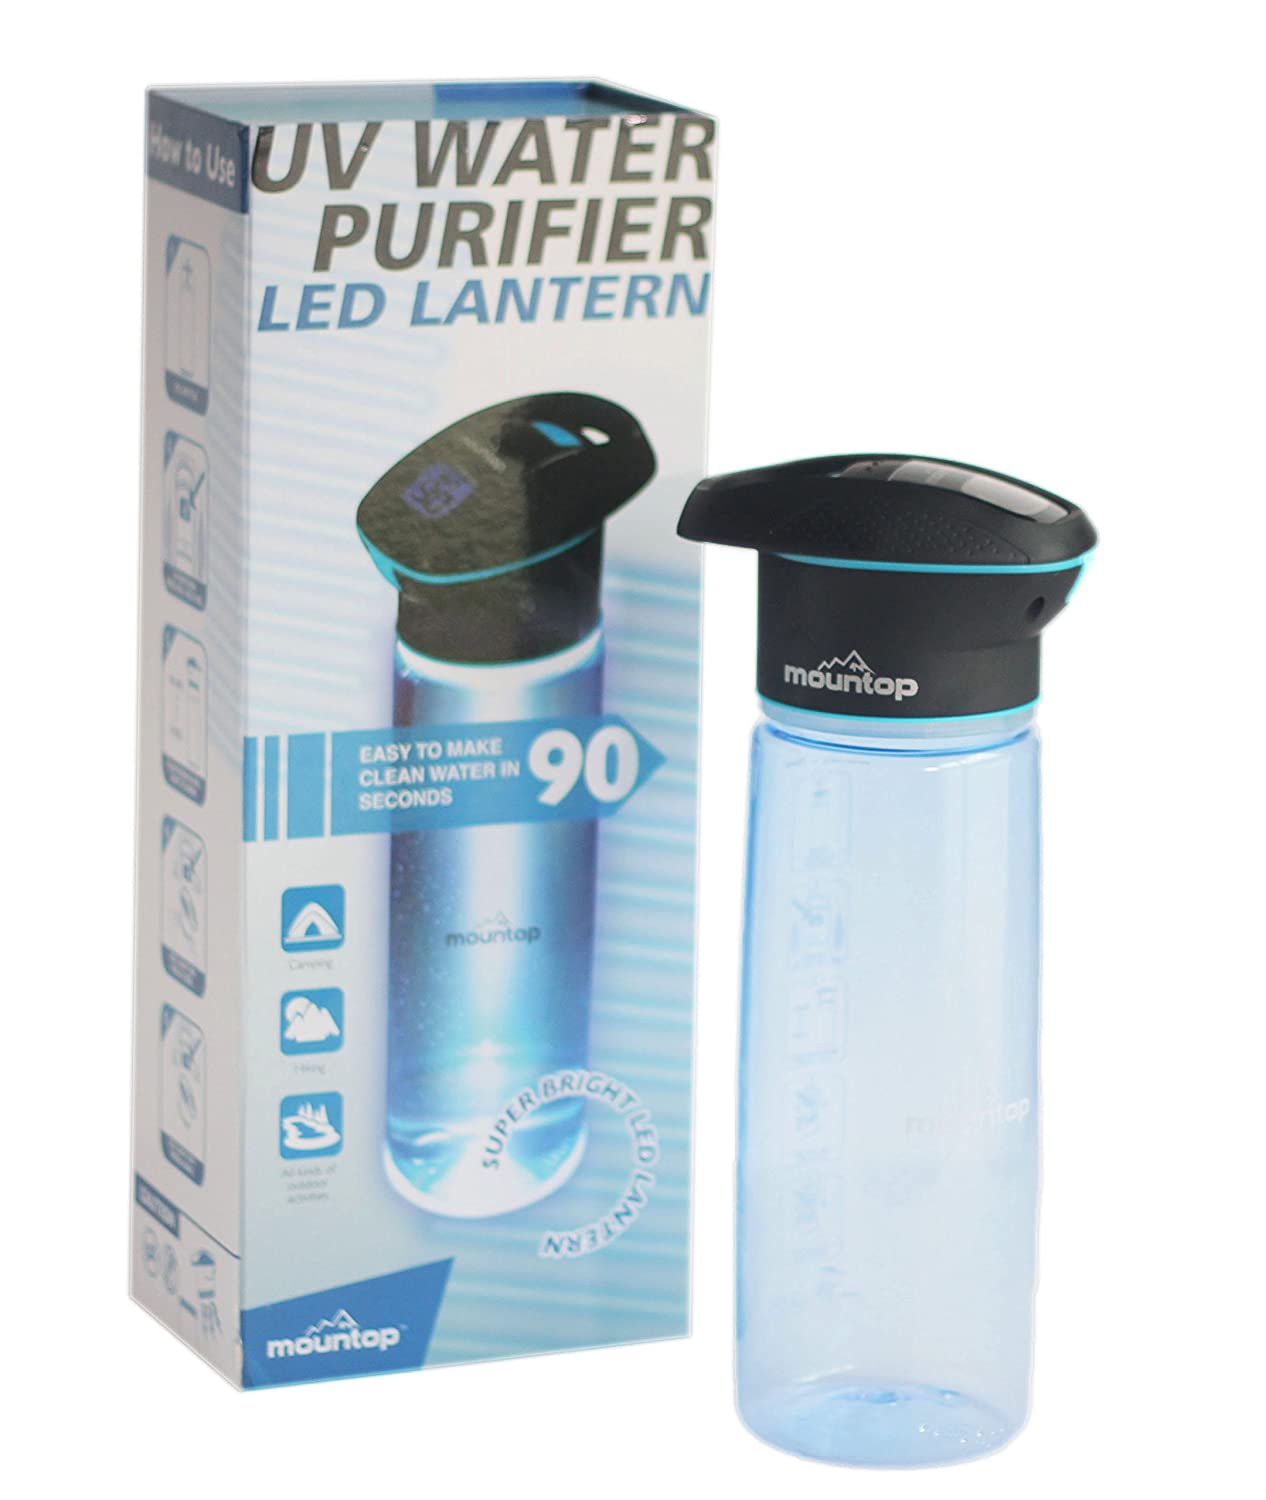 Get Fresh Water Anywhere The Top 5 Best Filter Bottle Waters of 2018